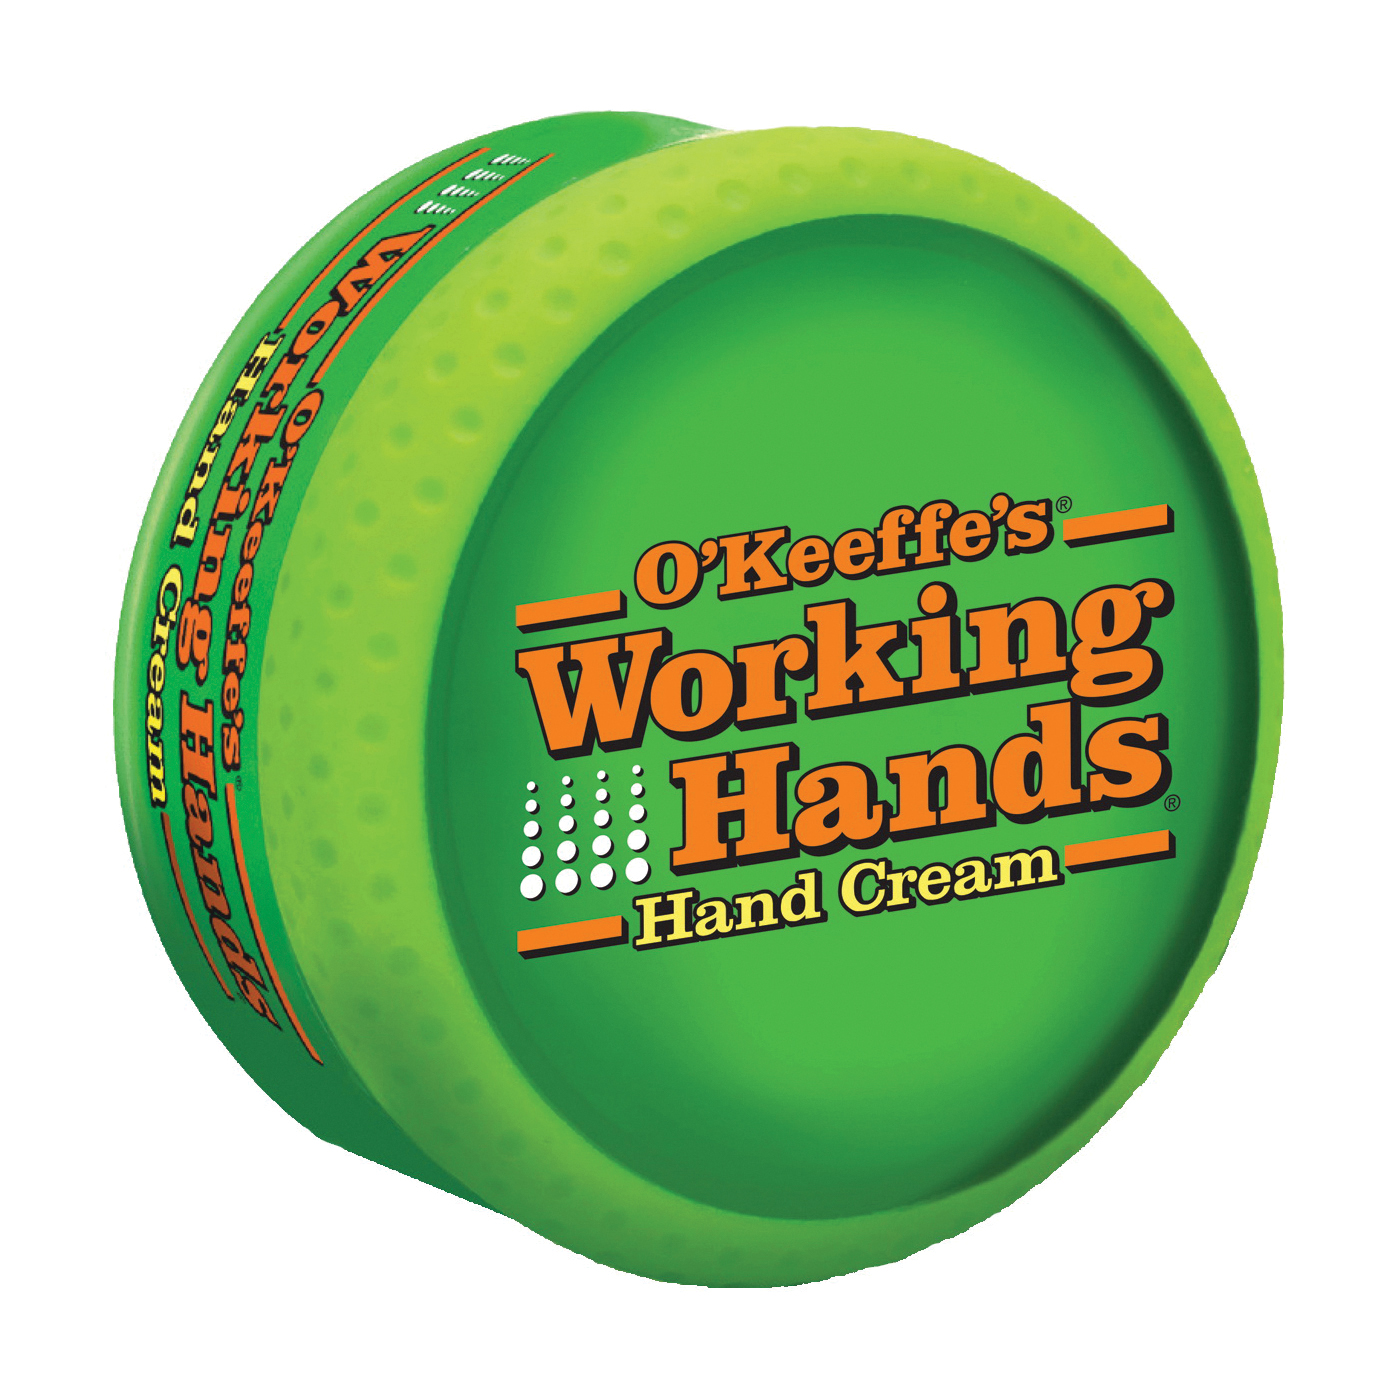 Picture of O'KEEFFE'S Working Hands K0350007 Hand Cream, Odorless, 3.4 oz Package, Jar